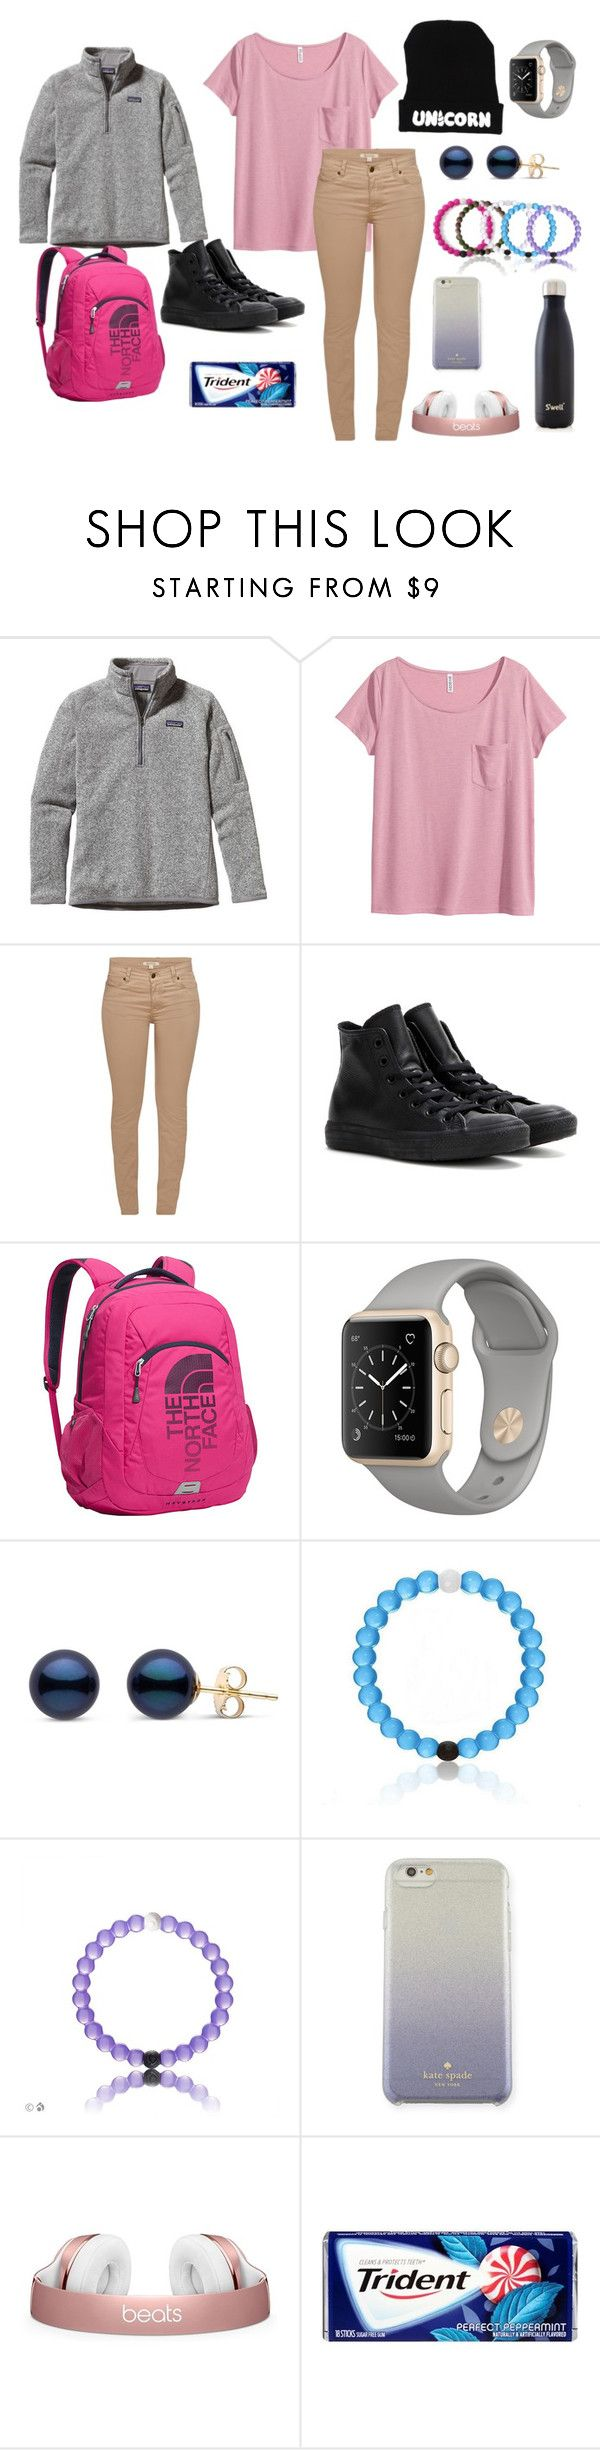 """""""Inverted Colors Challenge!!😂"""" by taybug2147 ❤ liked on Polyvore featuring Patagonia, H&M, Barbour, Converse, The North Face, Kate Spade, S'well and invertedcolorschallenge"""